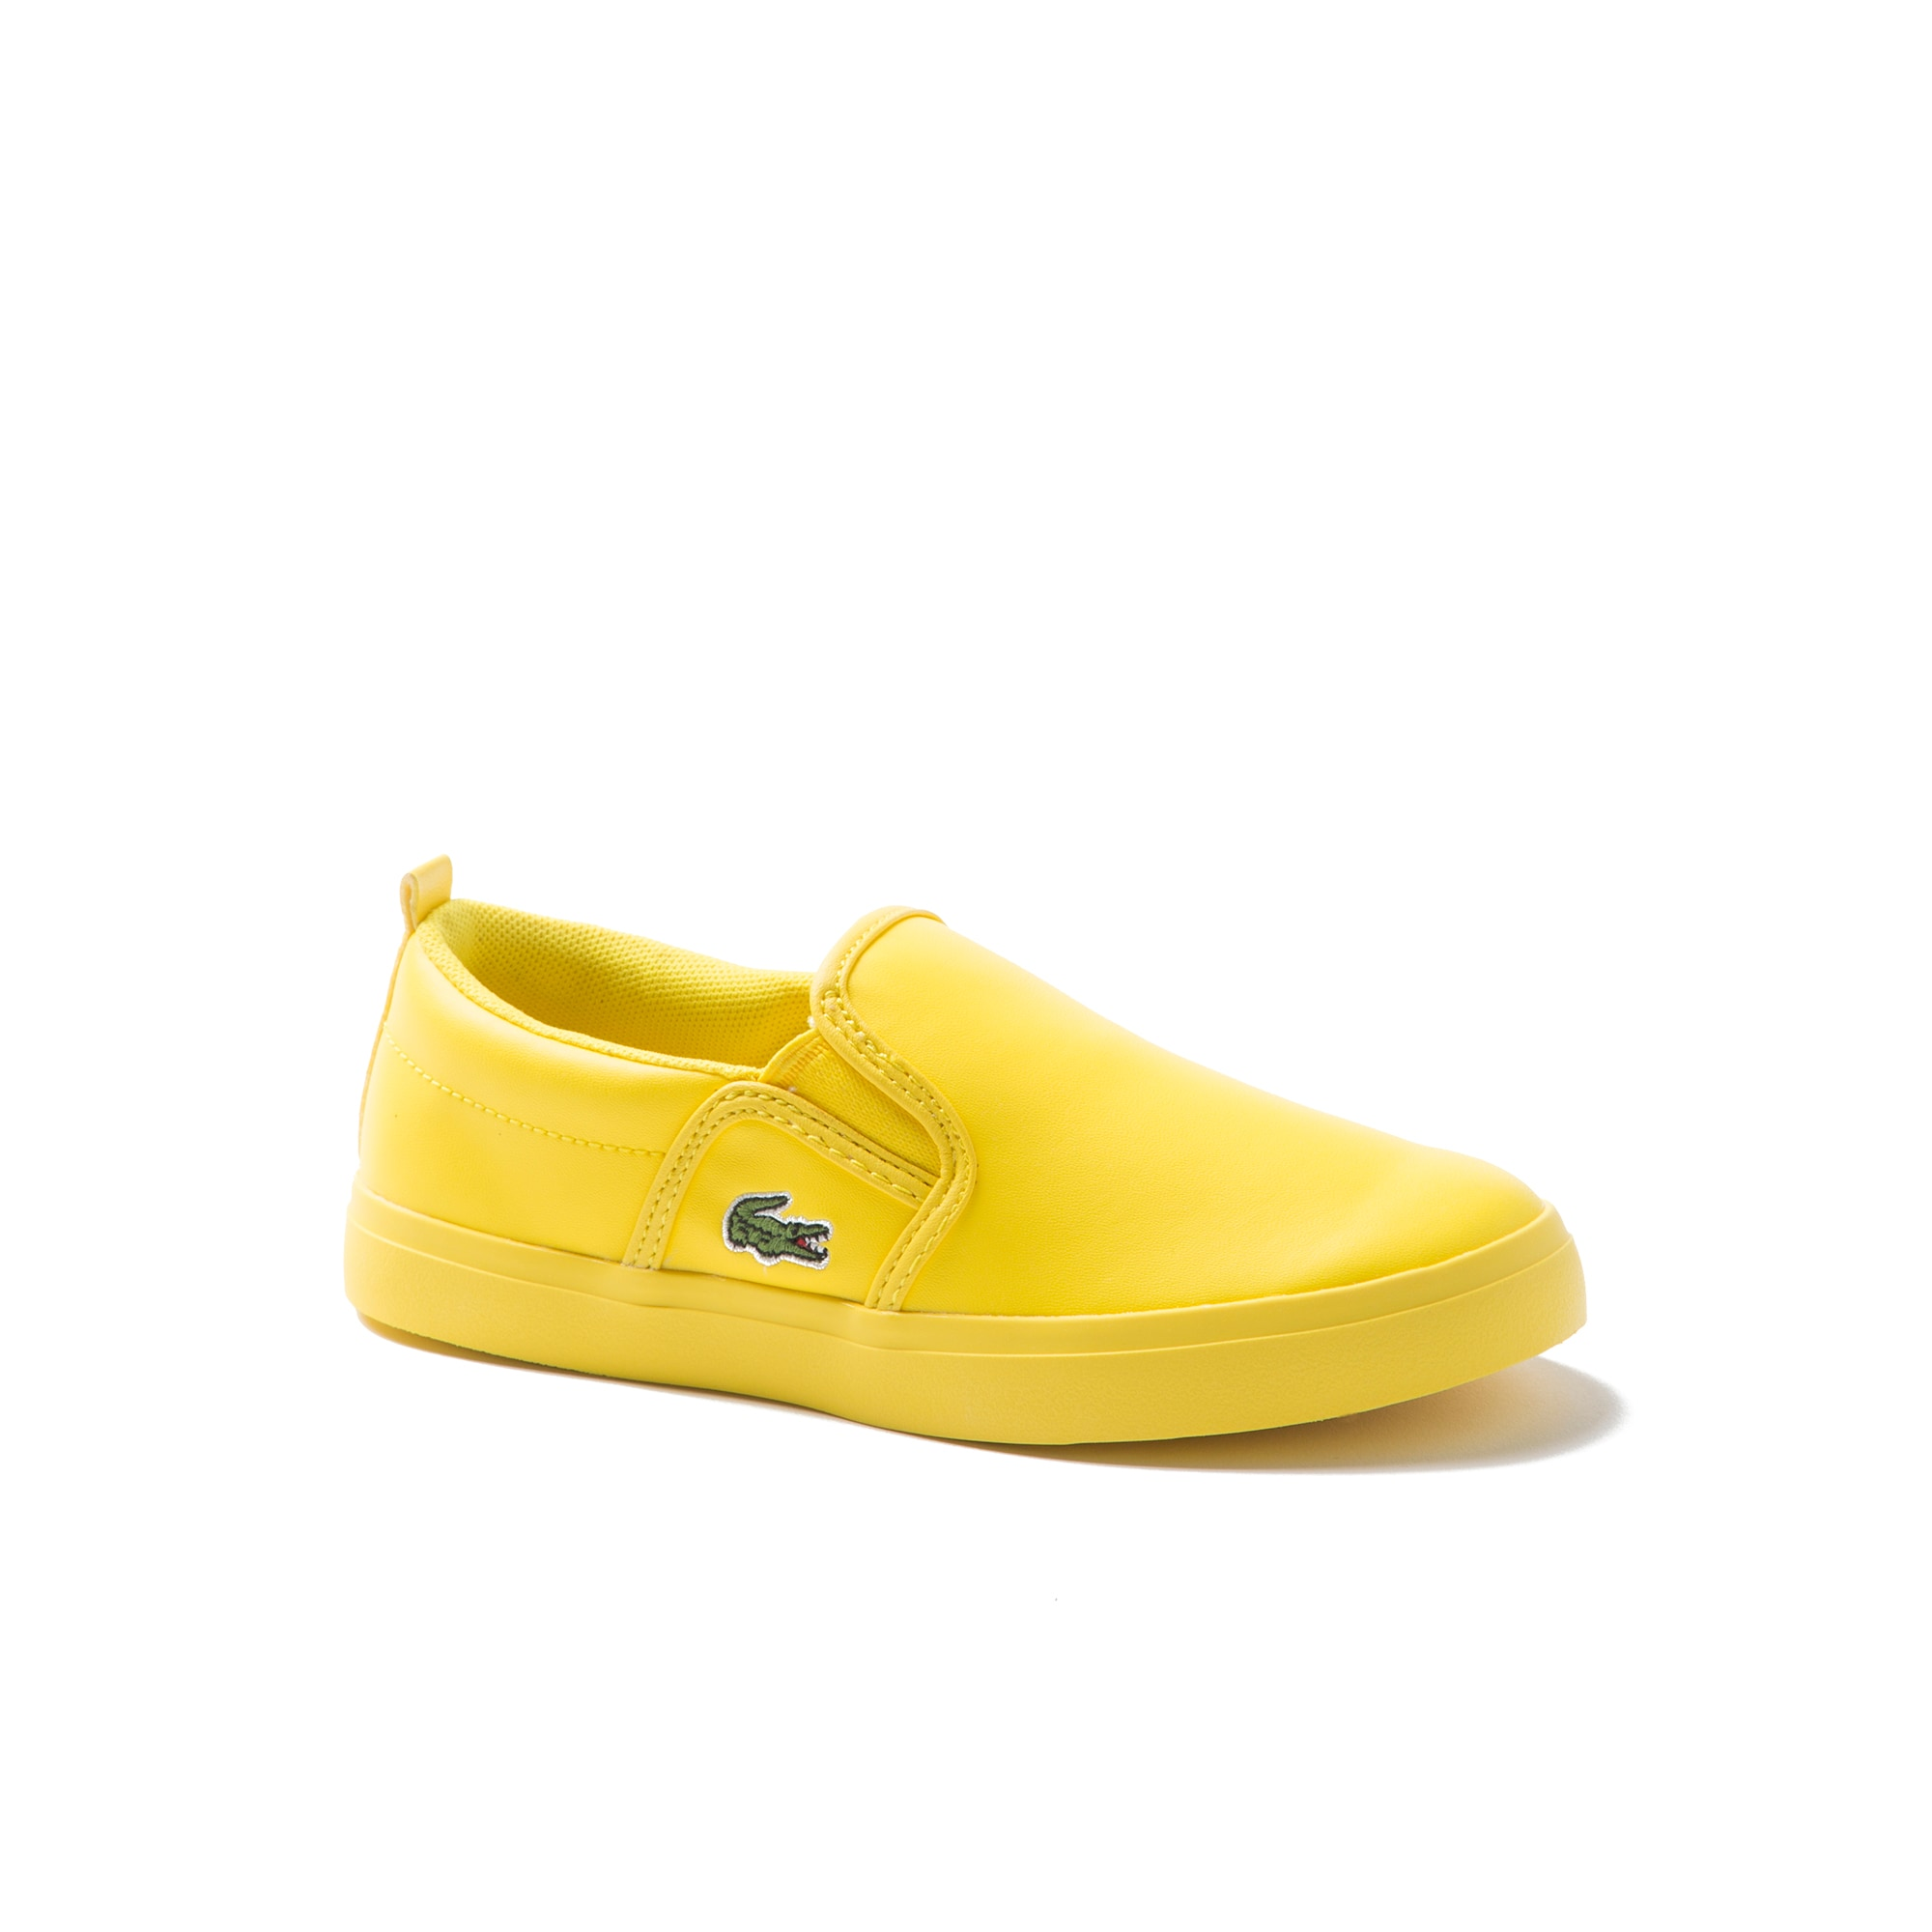 Kids' Gazon Slip-ons